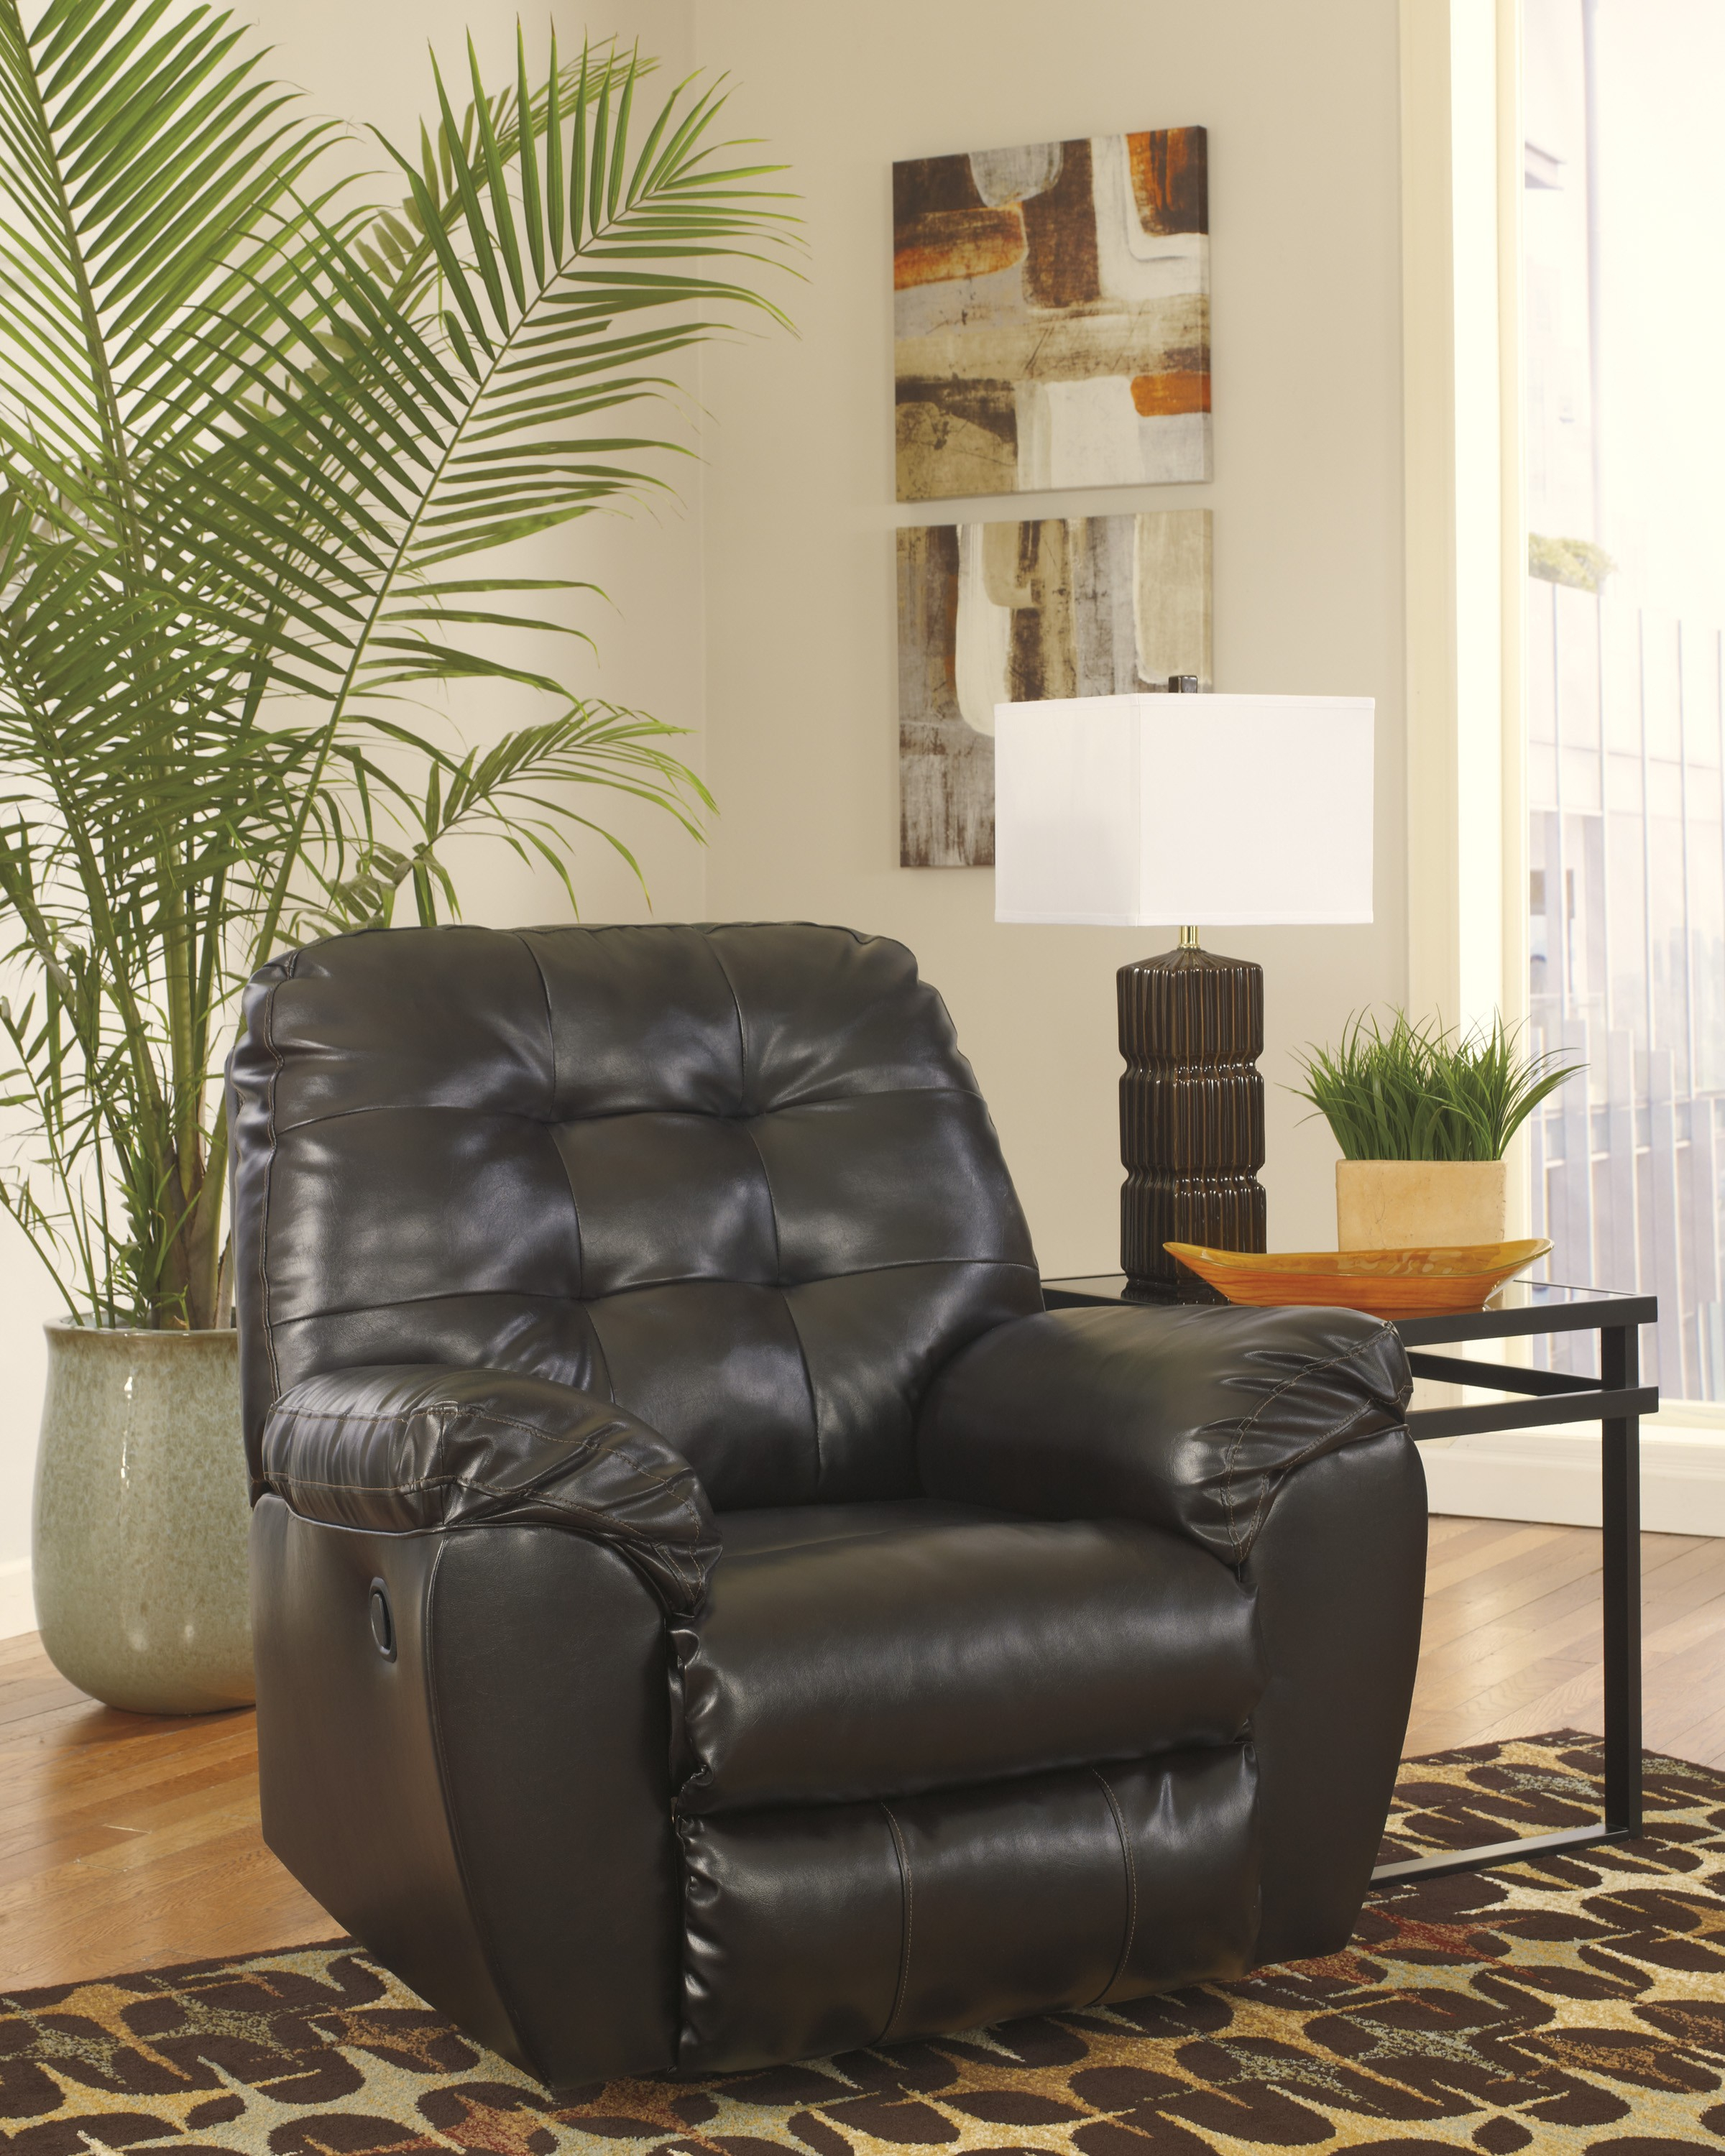 Leon Furniture | Buy Living Rooms Recliners Online, Phoenix Within Hercules Oyster Swivel Glider Recliners (Photo 15 of 20)